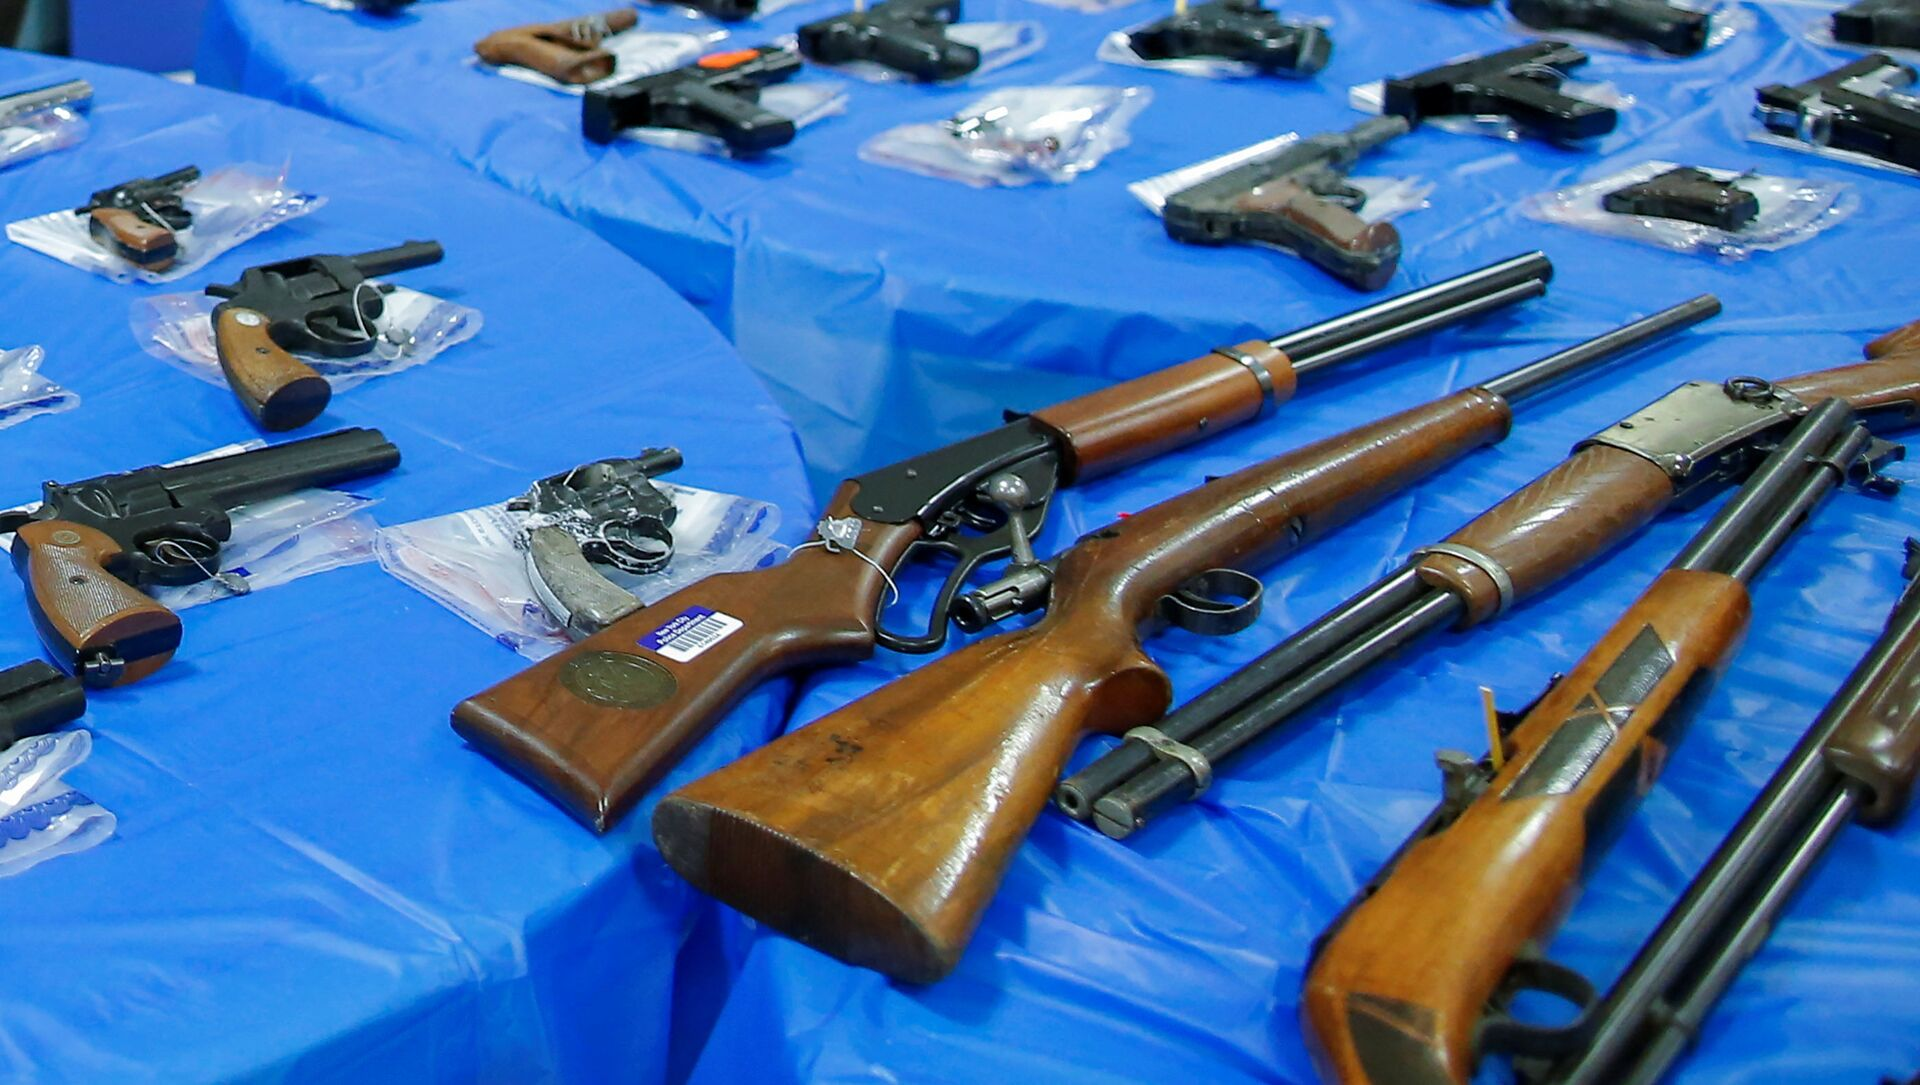 Guns are displayed after a gun buyback event organized by the New York City Police Department (NYPD), in the Queens borough of New York City, U.S., June 12, 2021. - Sputnik International, 1920, 04.08.2021